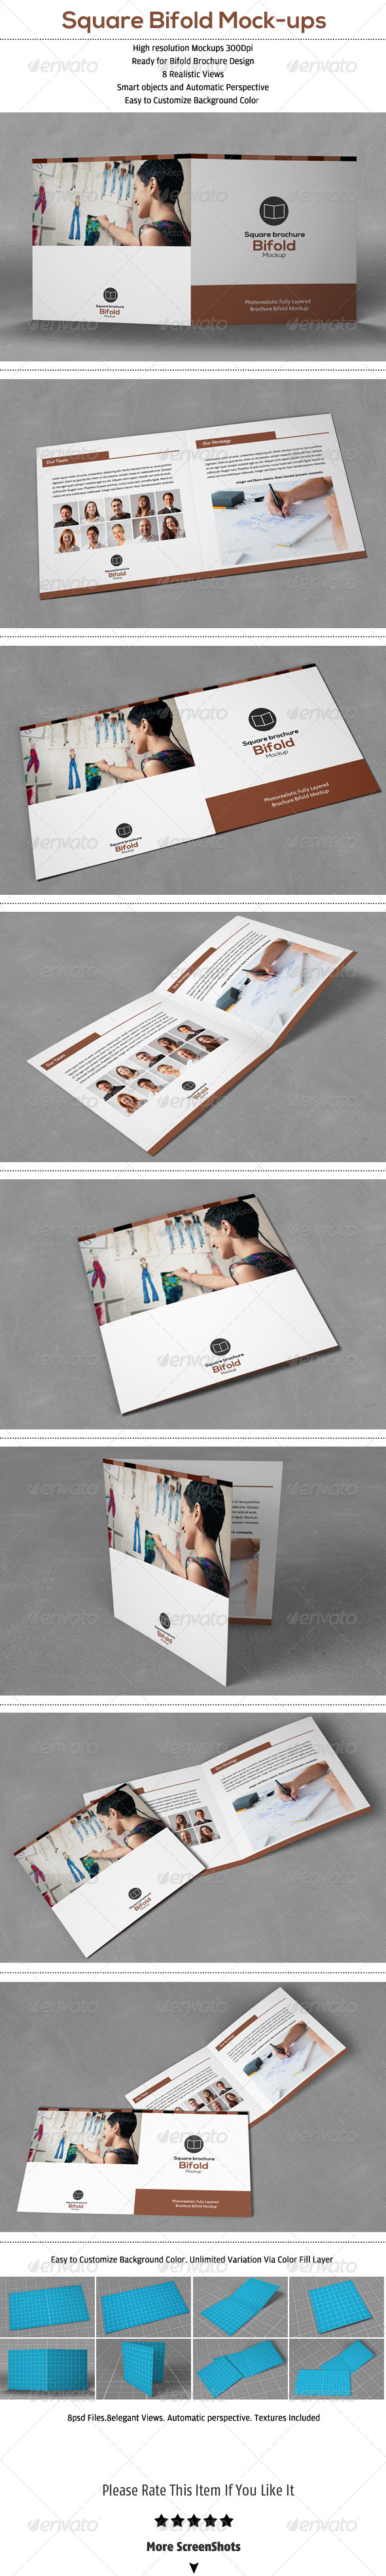 Square Bifold Brochure Mock-Up - Brochures Print